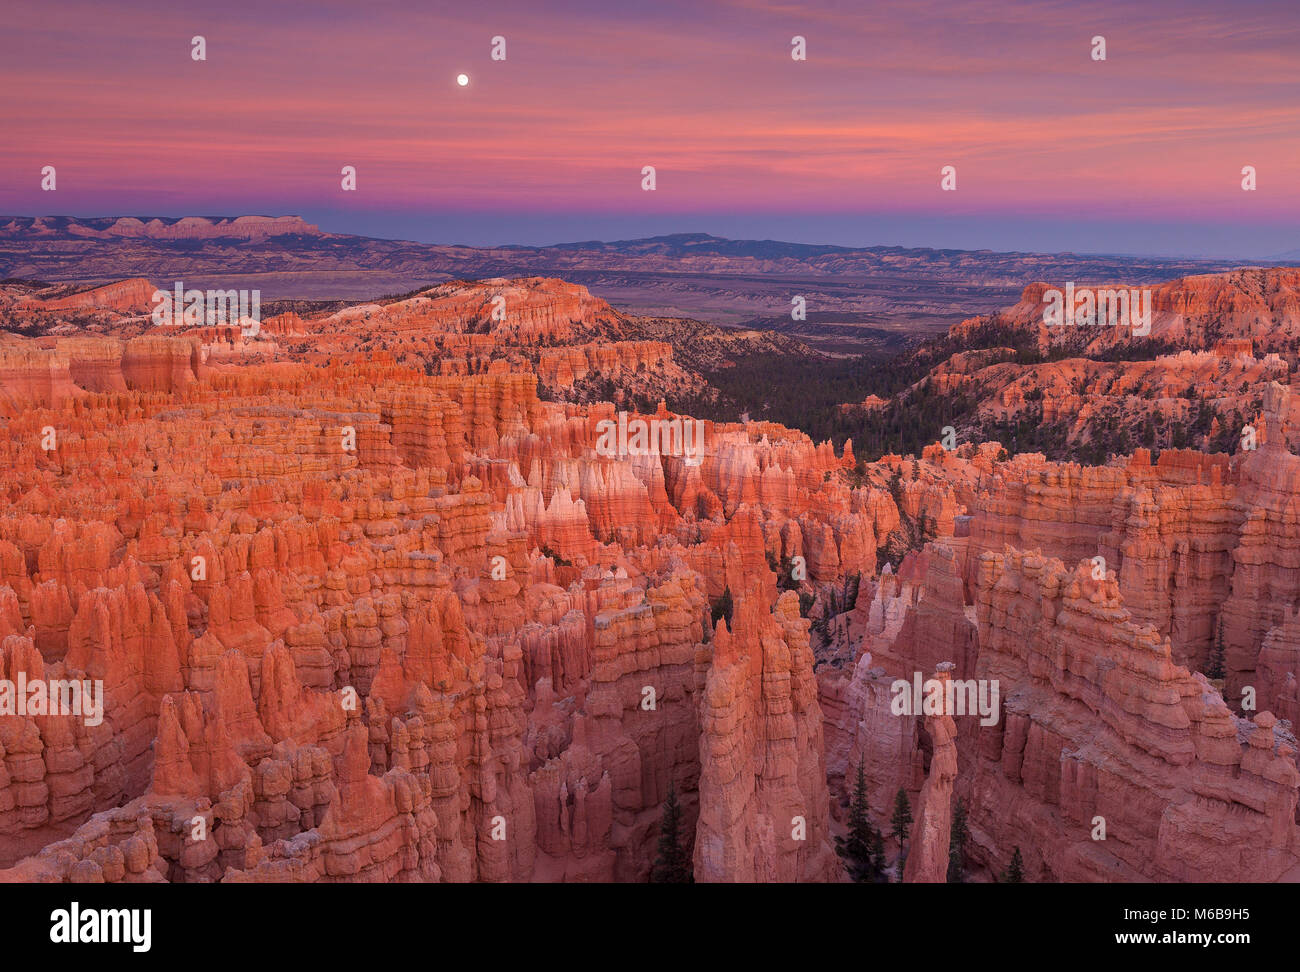 Moonrise over Bryce Canyon National Park, Utah - Stock Image